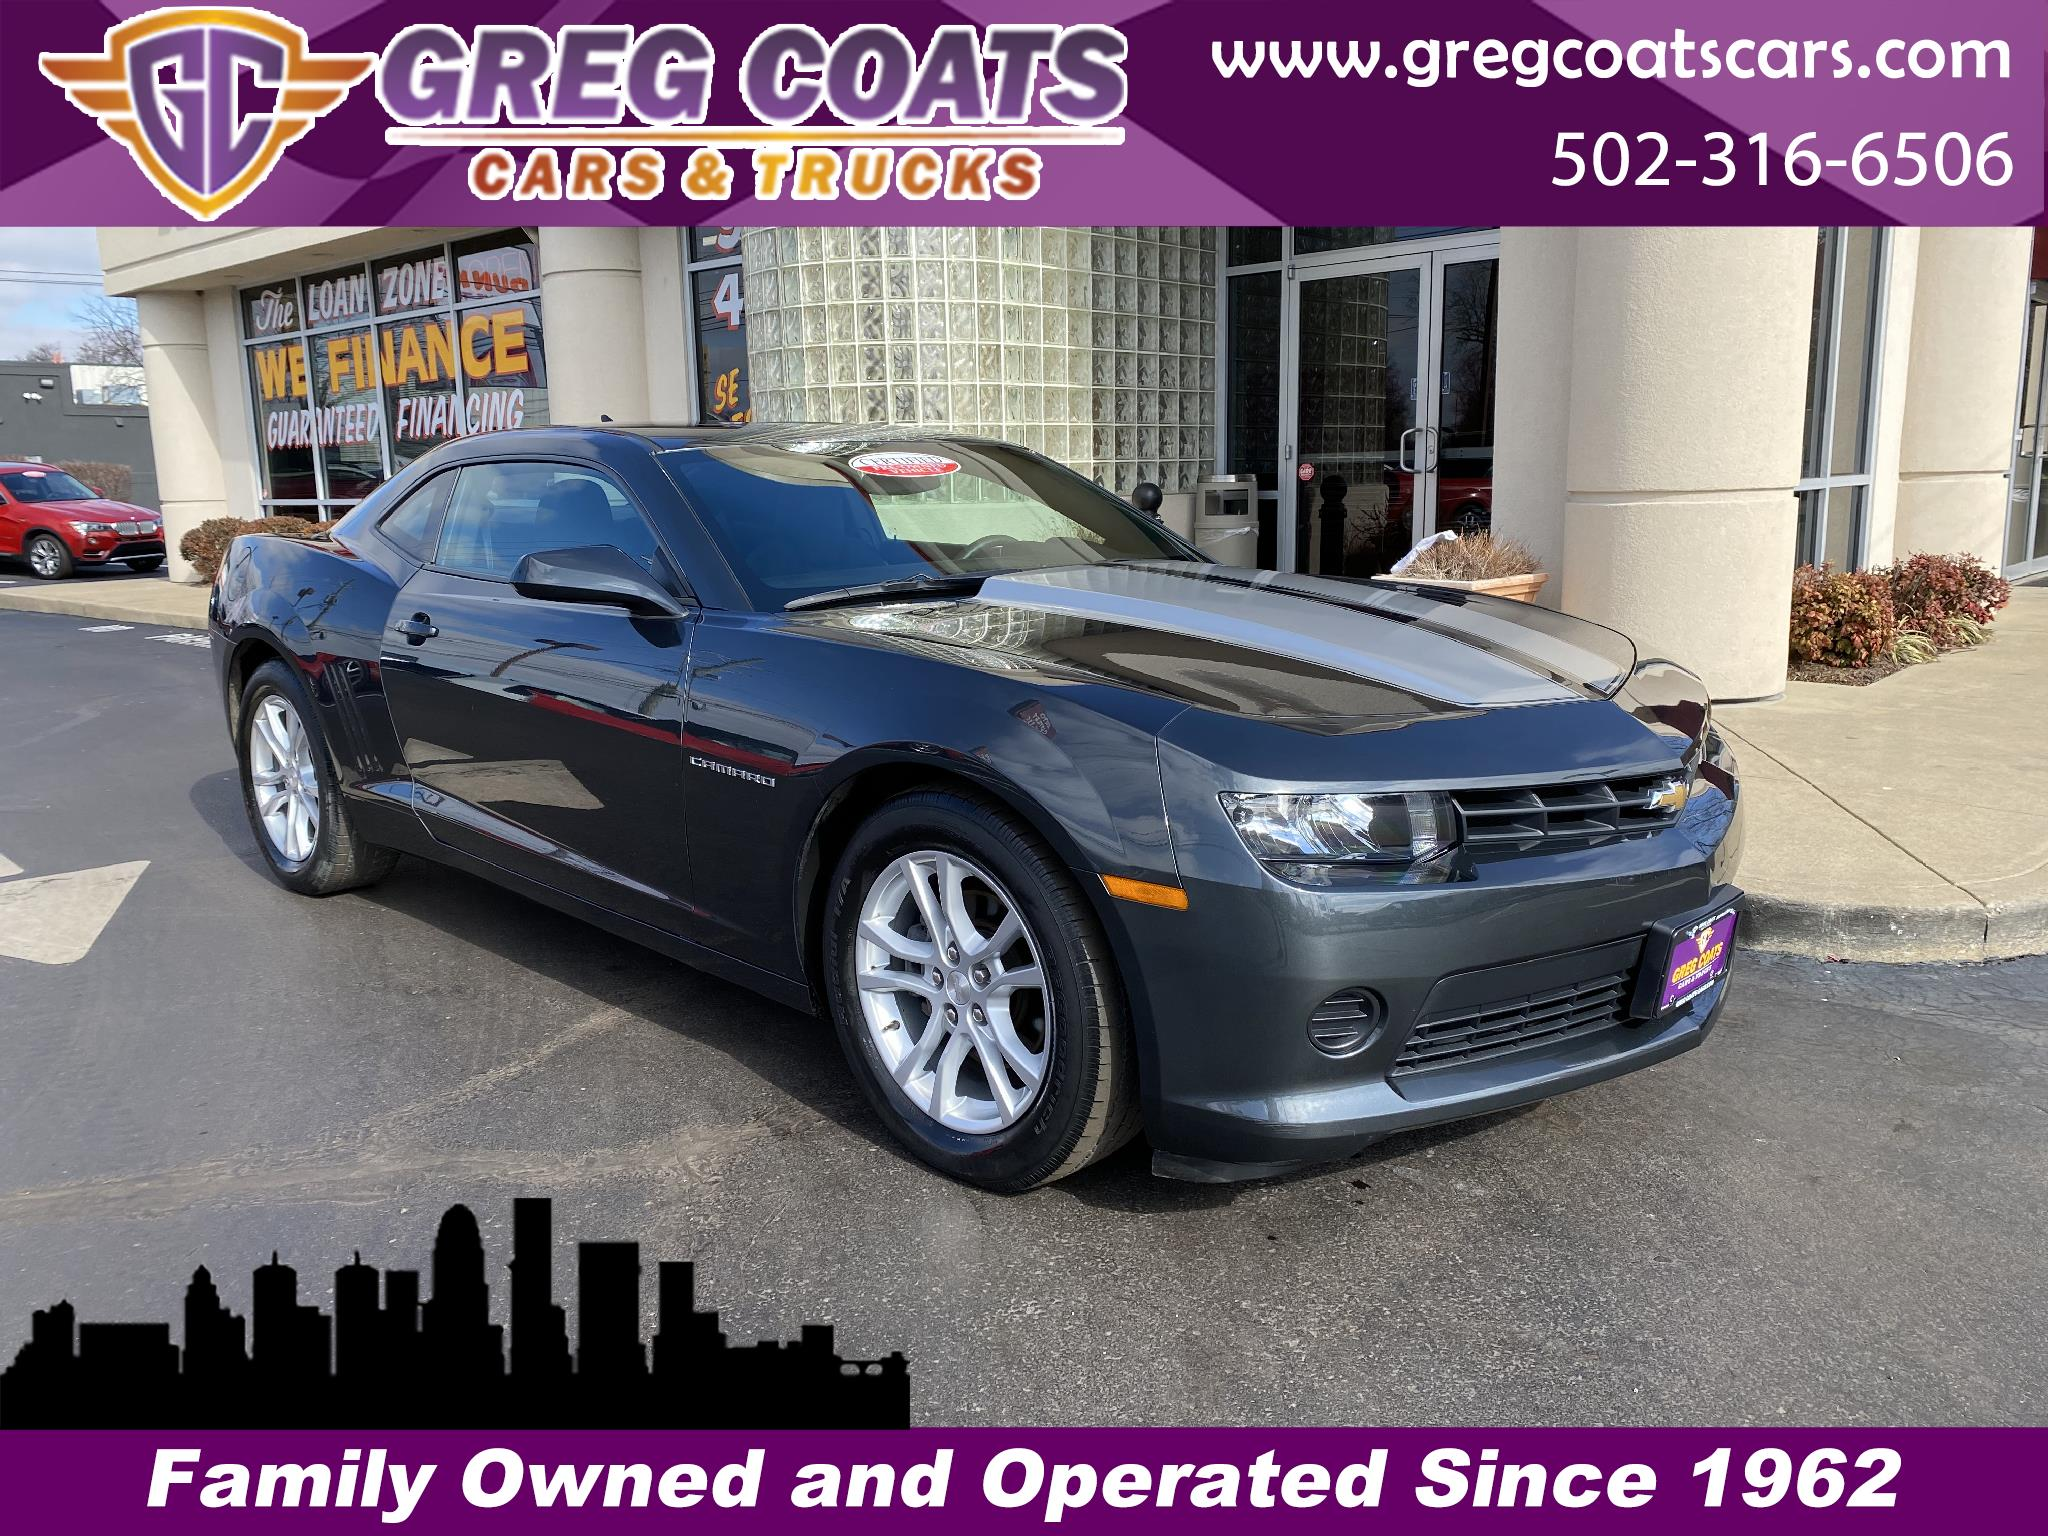 Chevrolet Camaro 2LS Coupe 2014